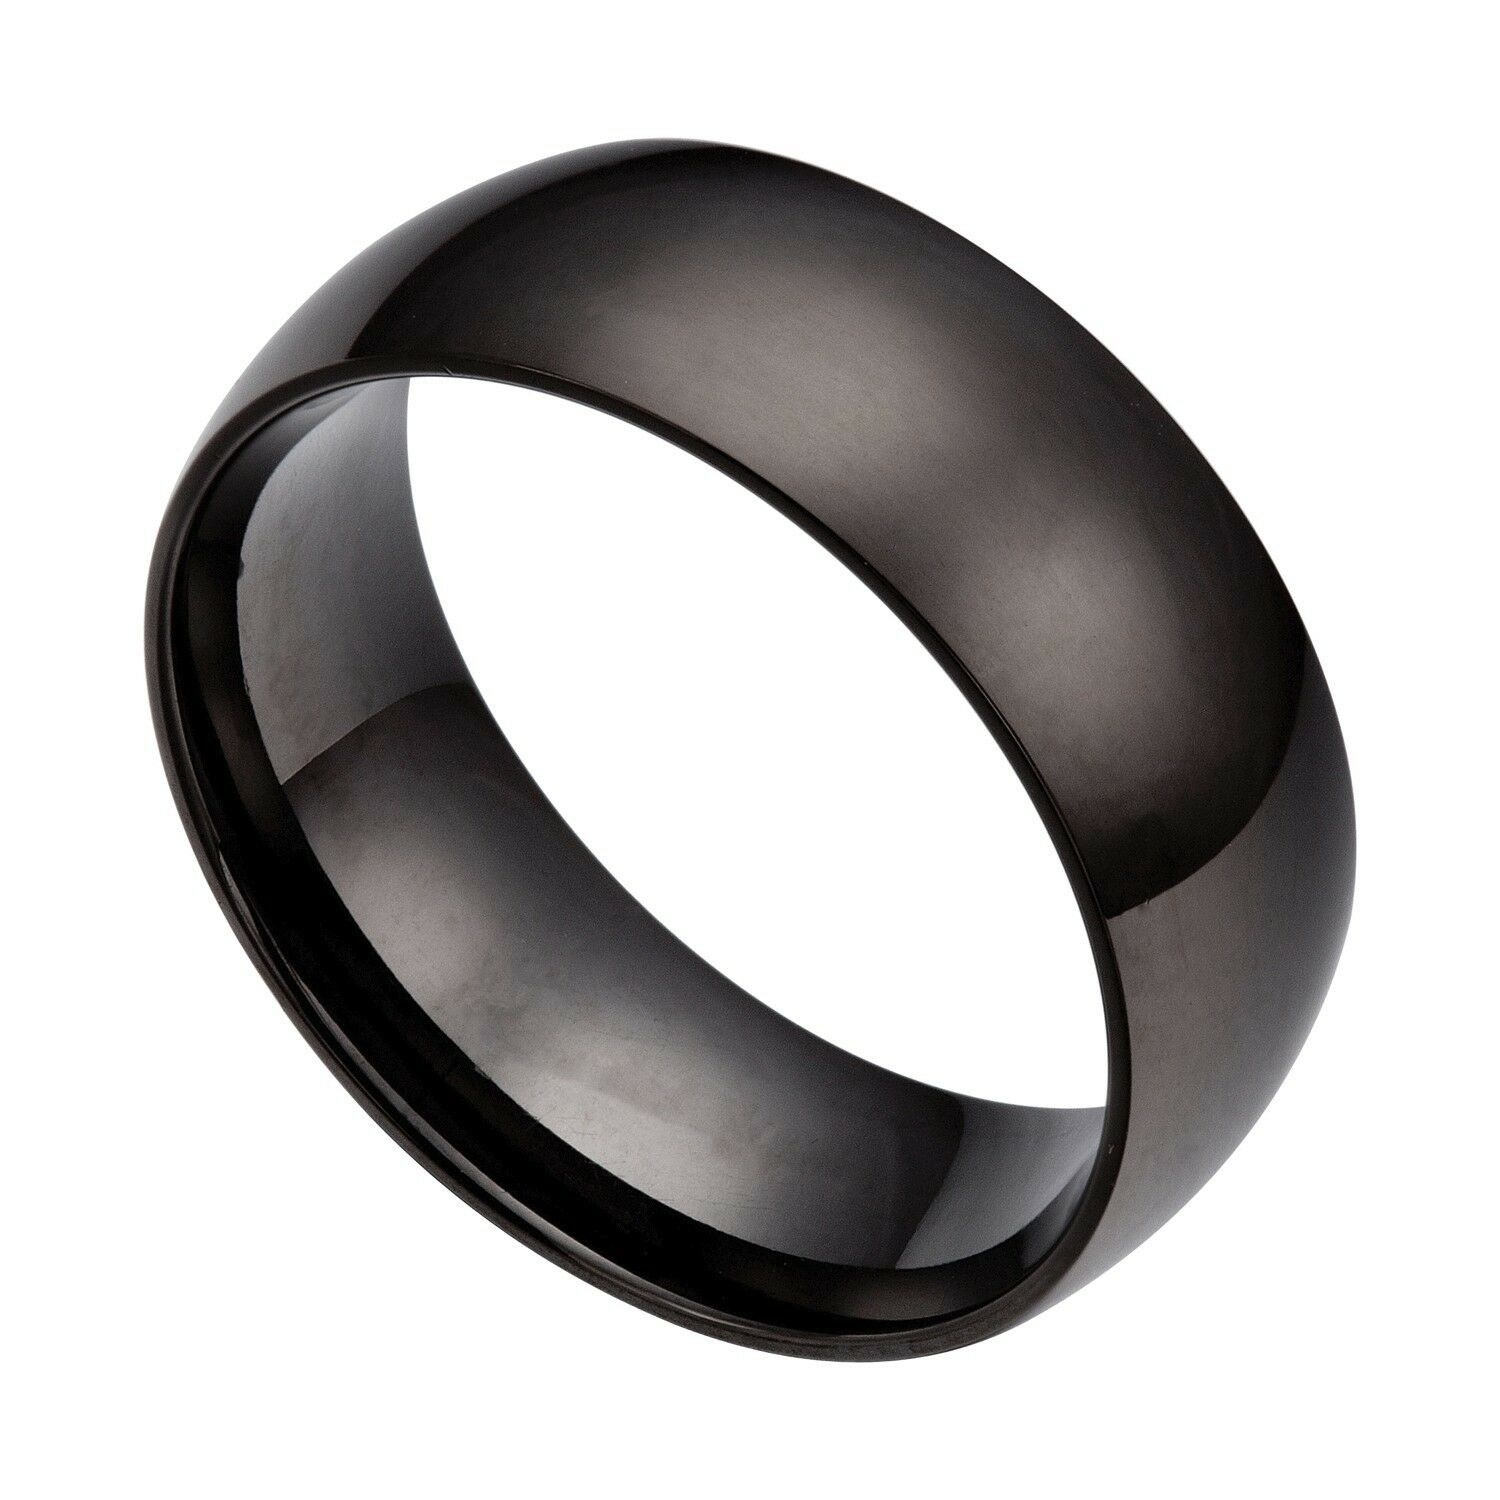 Stainless Steel Mens Wedding Band Ring 8mm: Men's Black 8mm Stainless Steel Wedding Band Ring Size 6 5